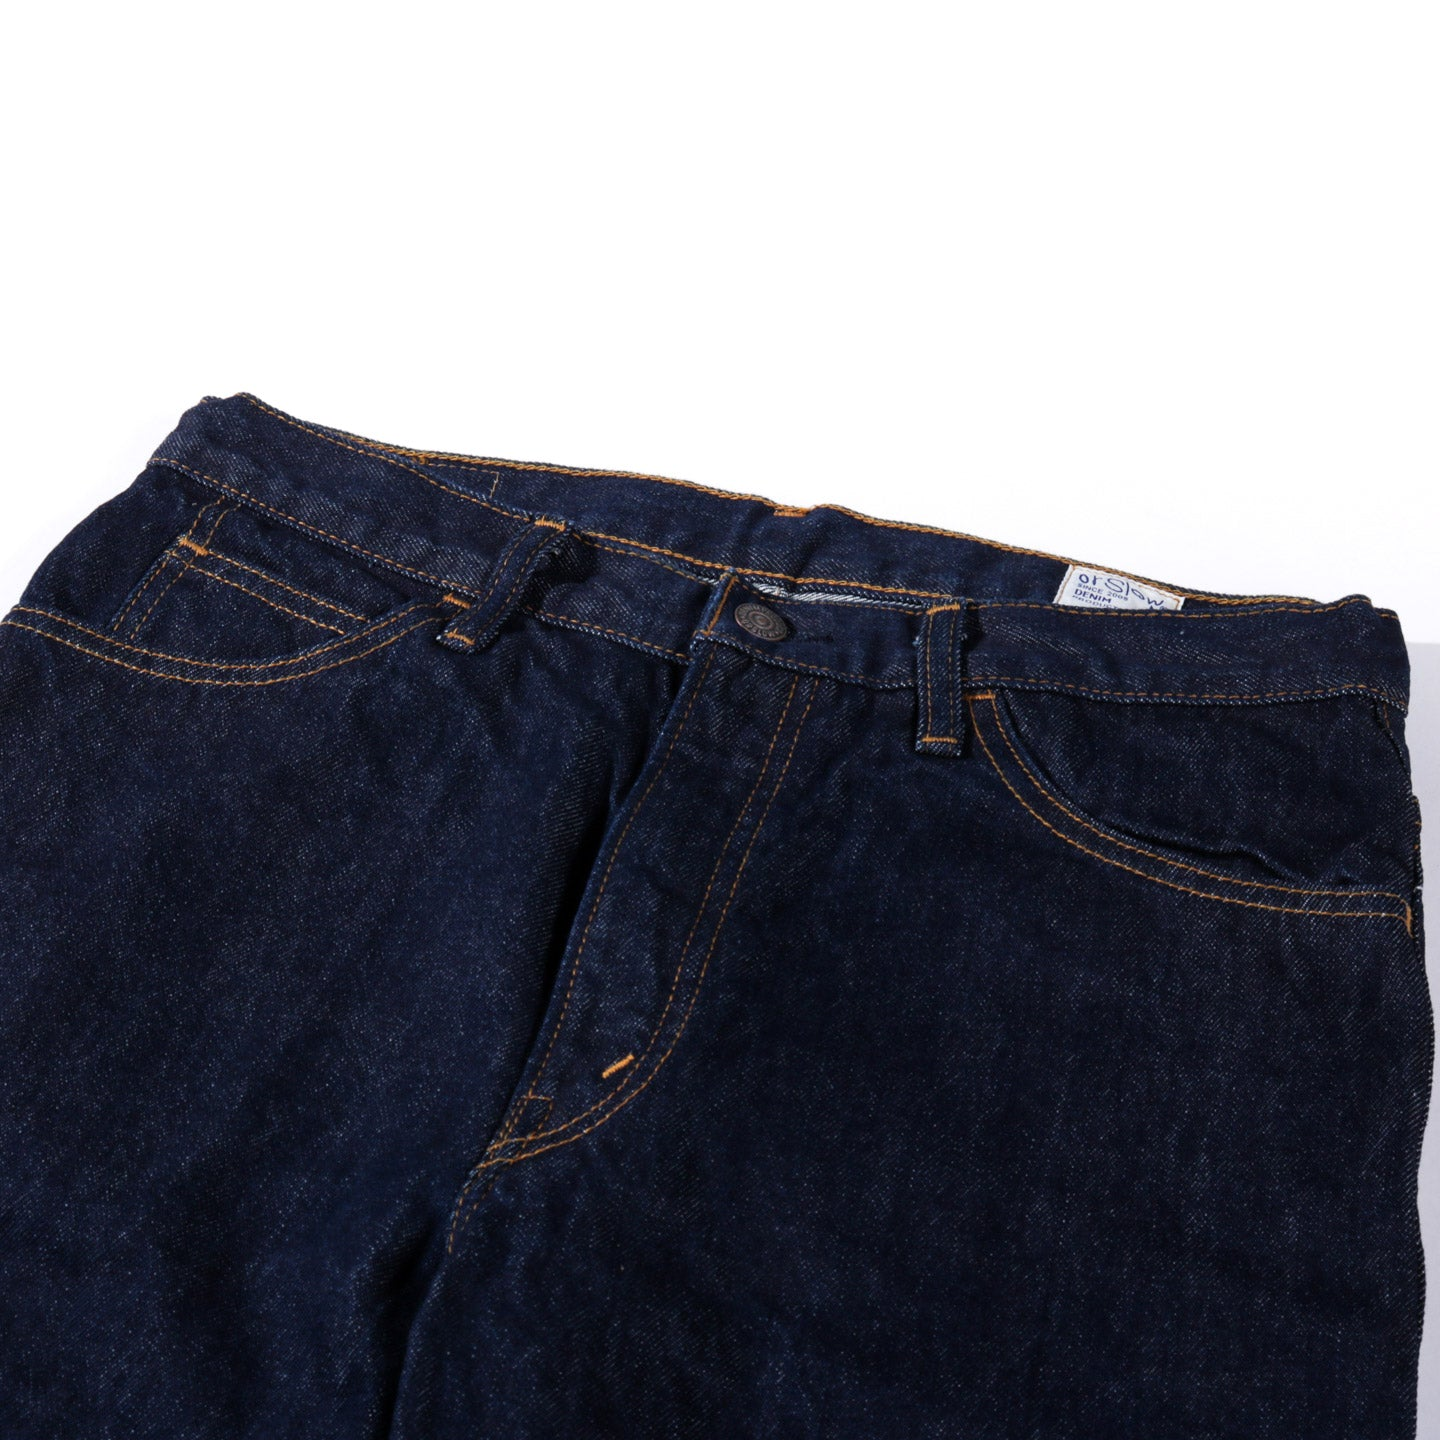 ORSLOW 307 SUPER SLIM FIT DENIM ONE WASH